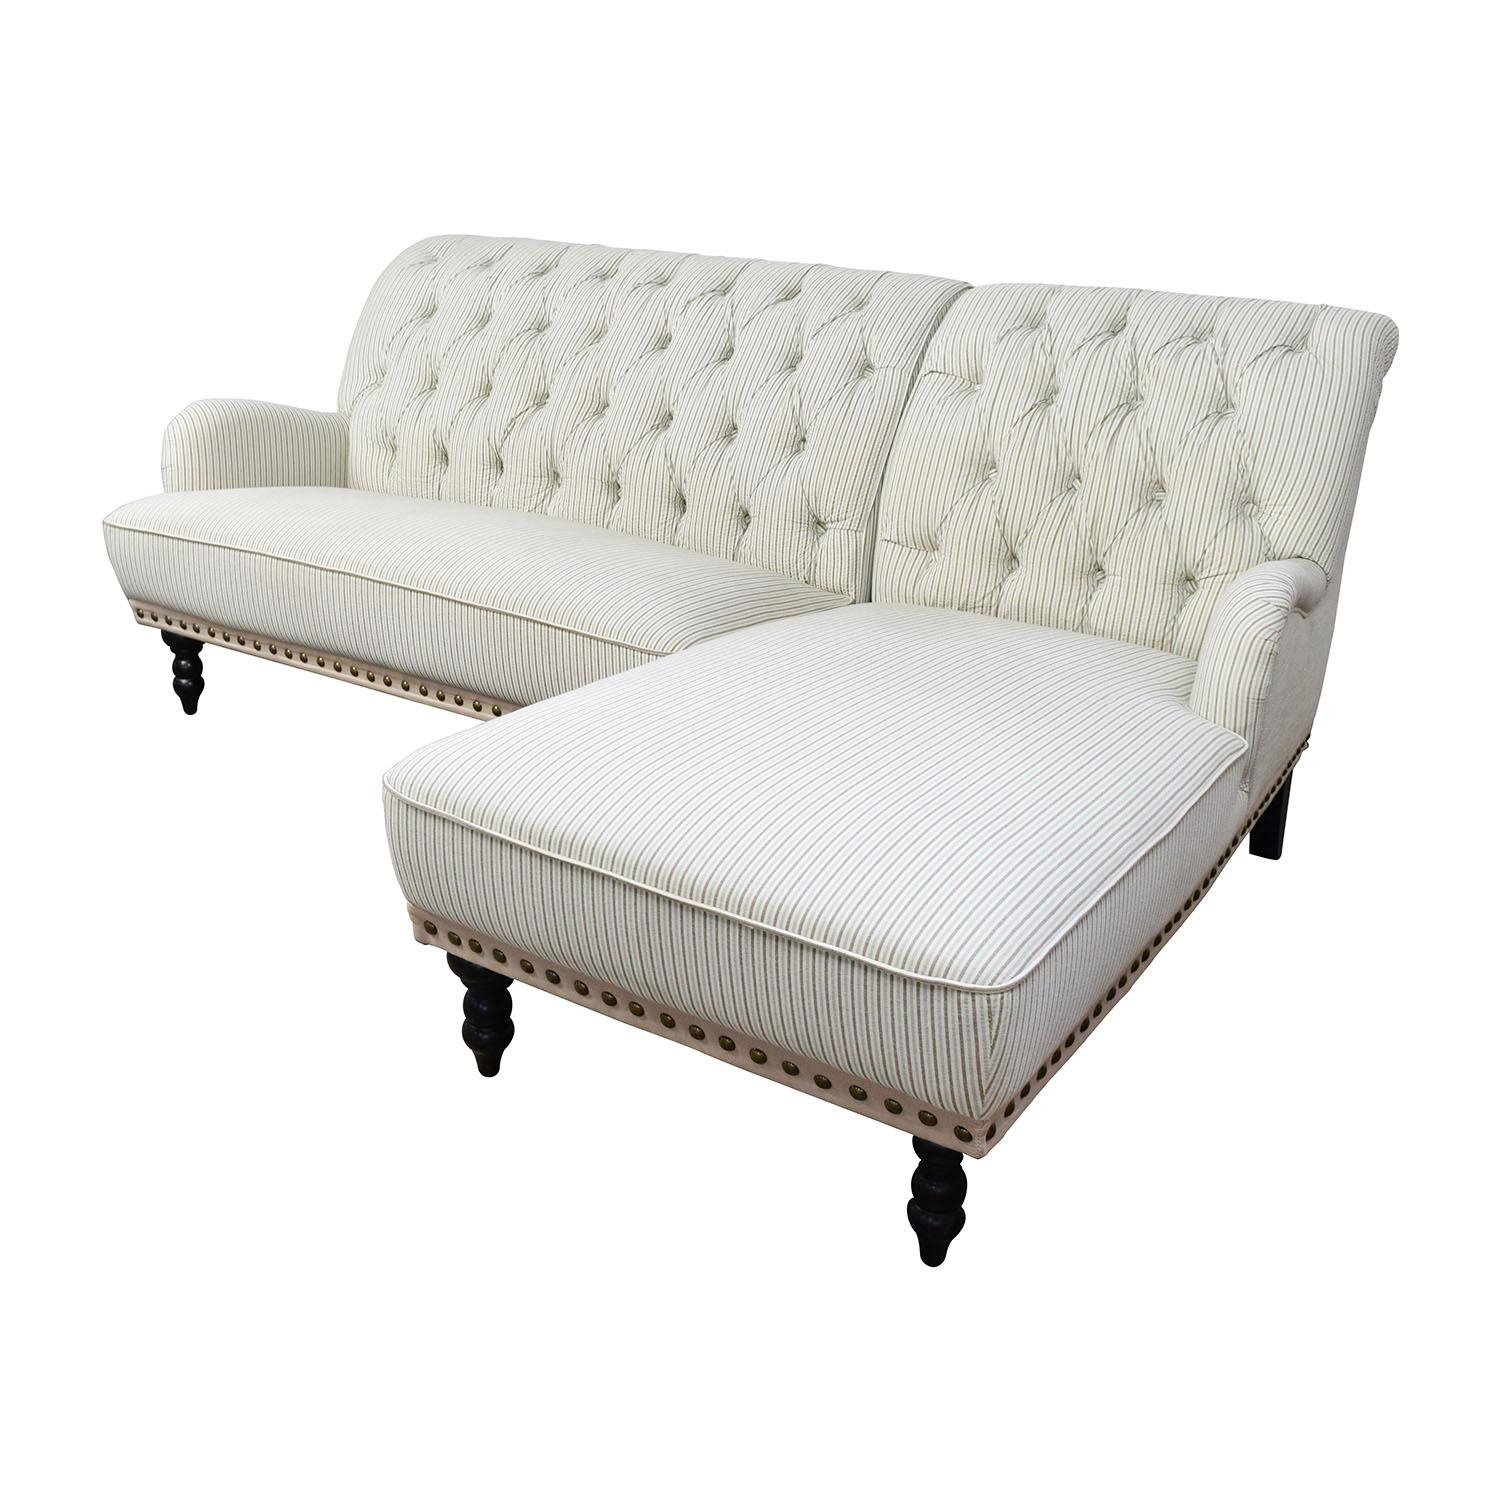 80% Off - Pier 1 Imports Pier 1 Imports Striped Chaise Sectional with Pier 1 Sofas